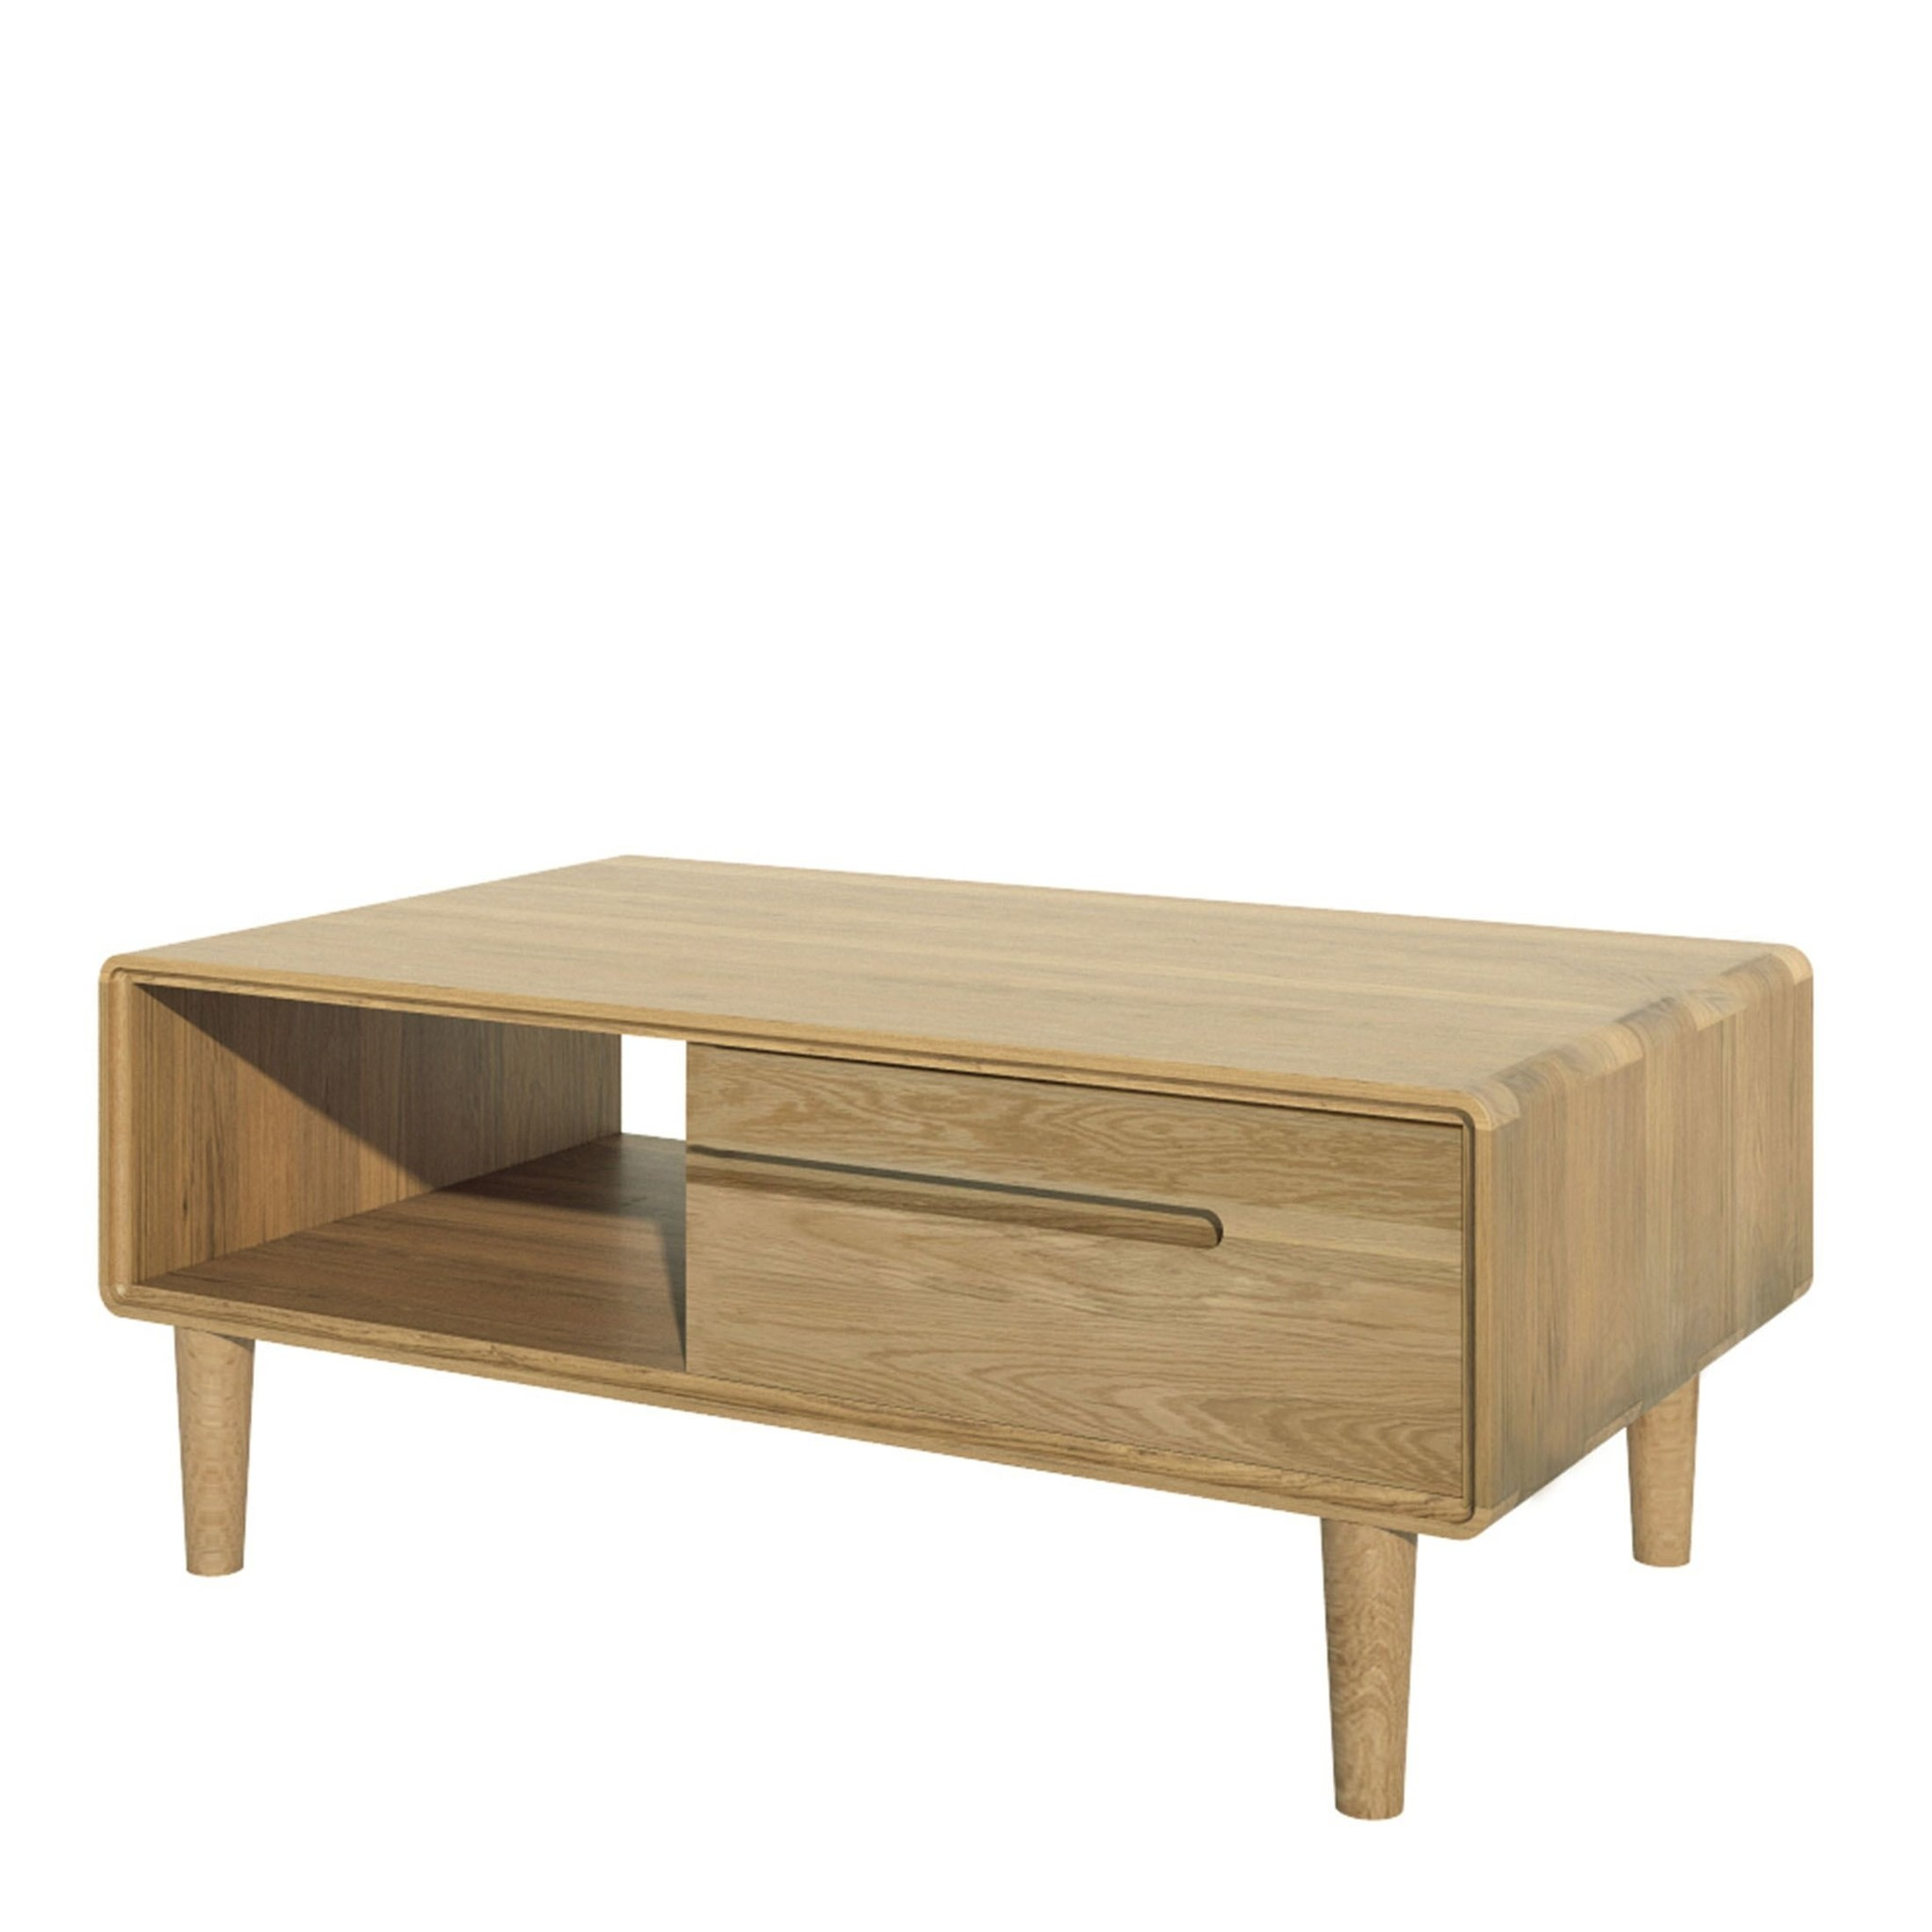 HomestyleGB Scandic Oak 3 x 2 Coffee Table